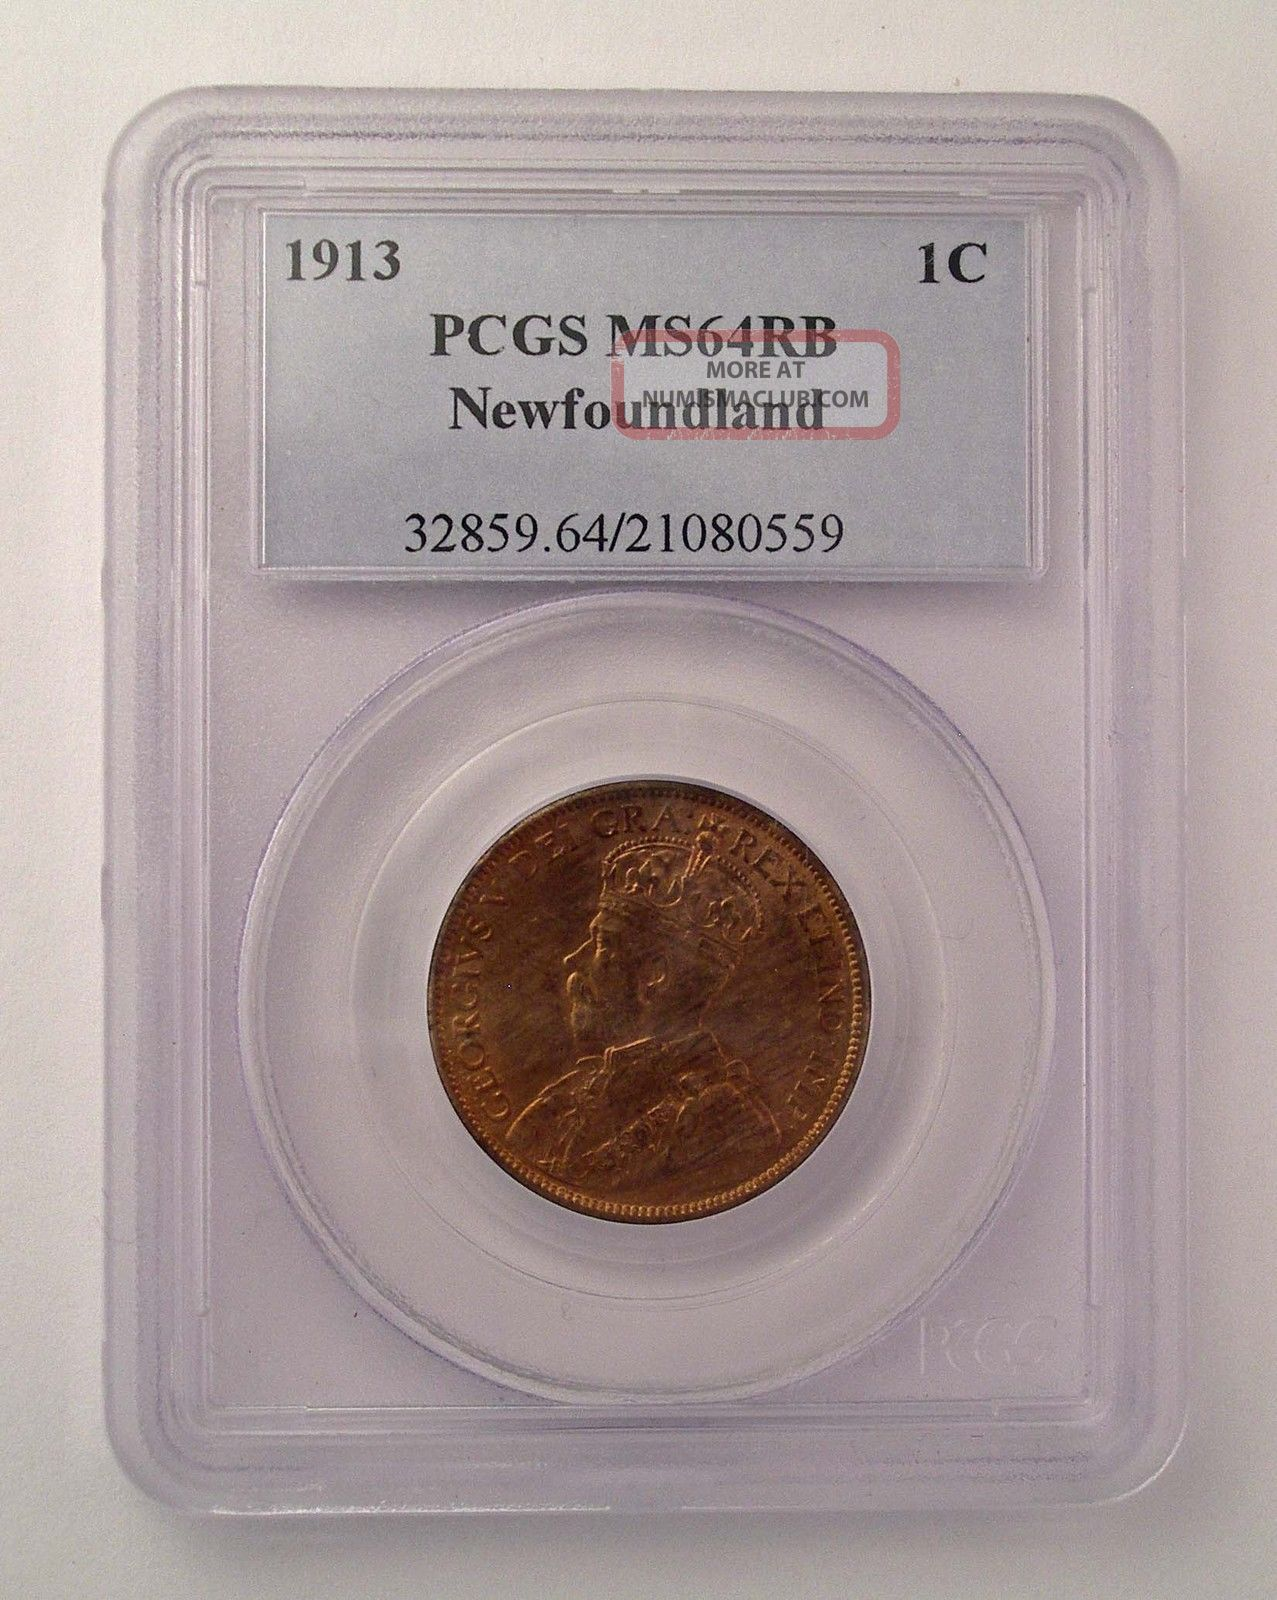 1813 Newfoundland Canada 1 Cent Pcgs Ms 64 Rb Red Km - 16 Coin Coins: Canada photo